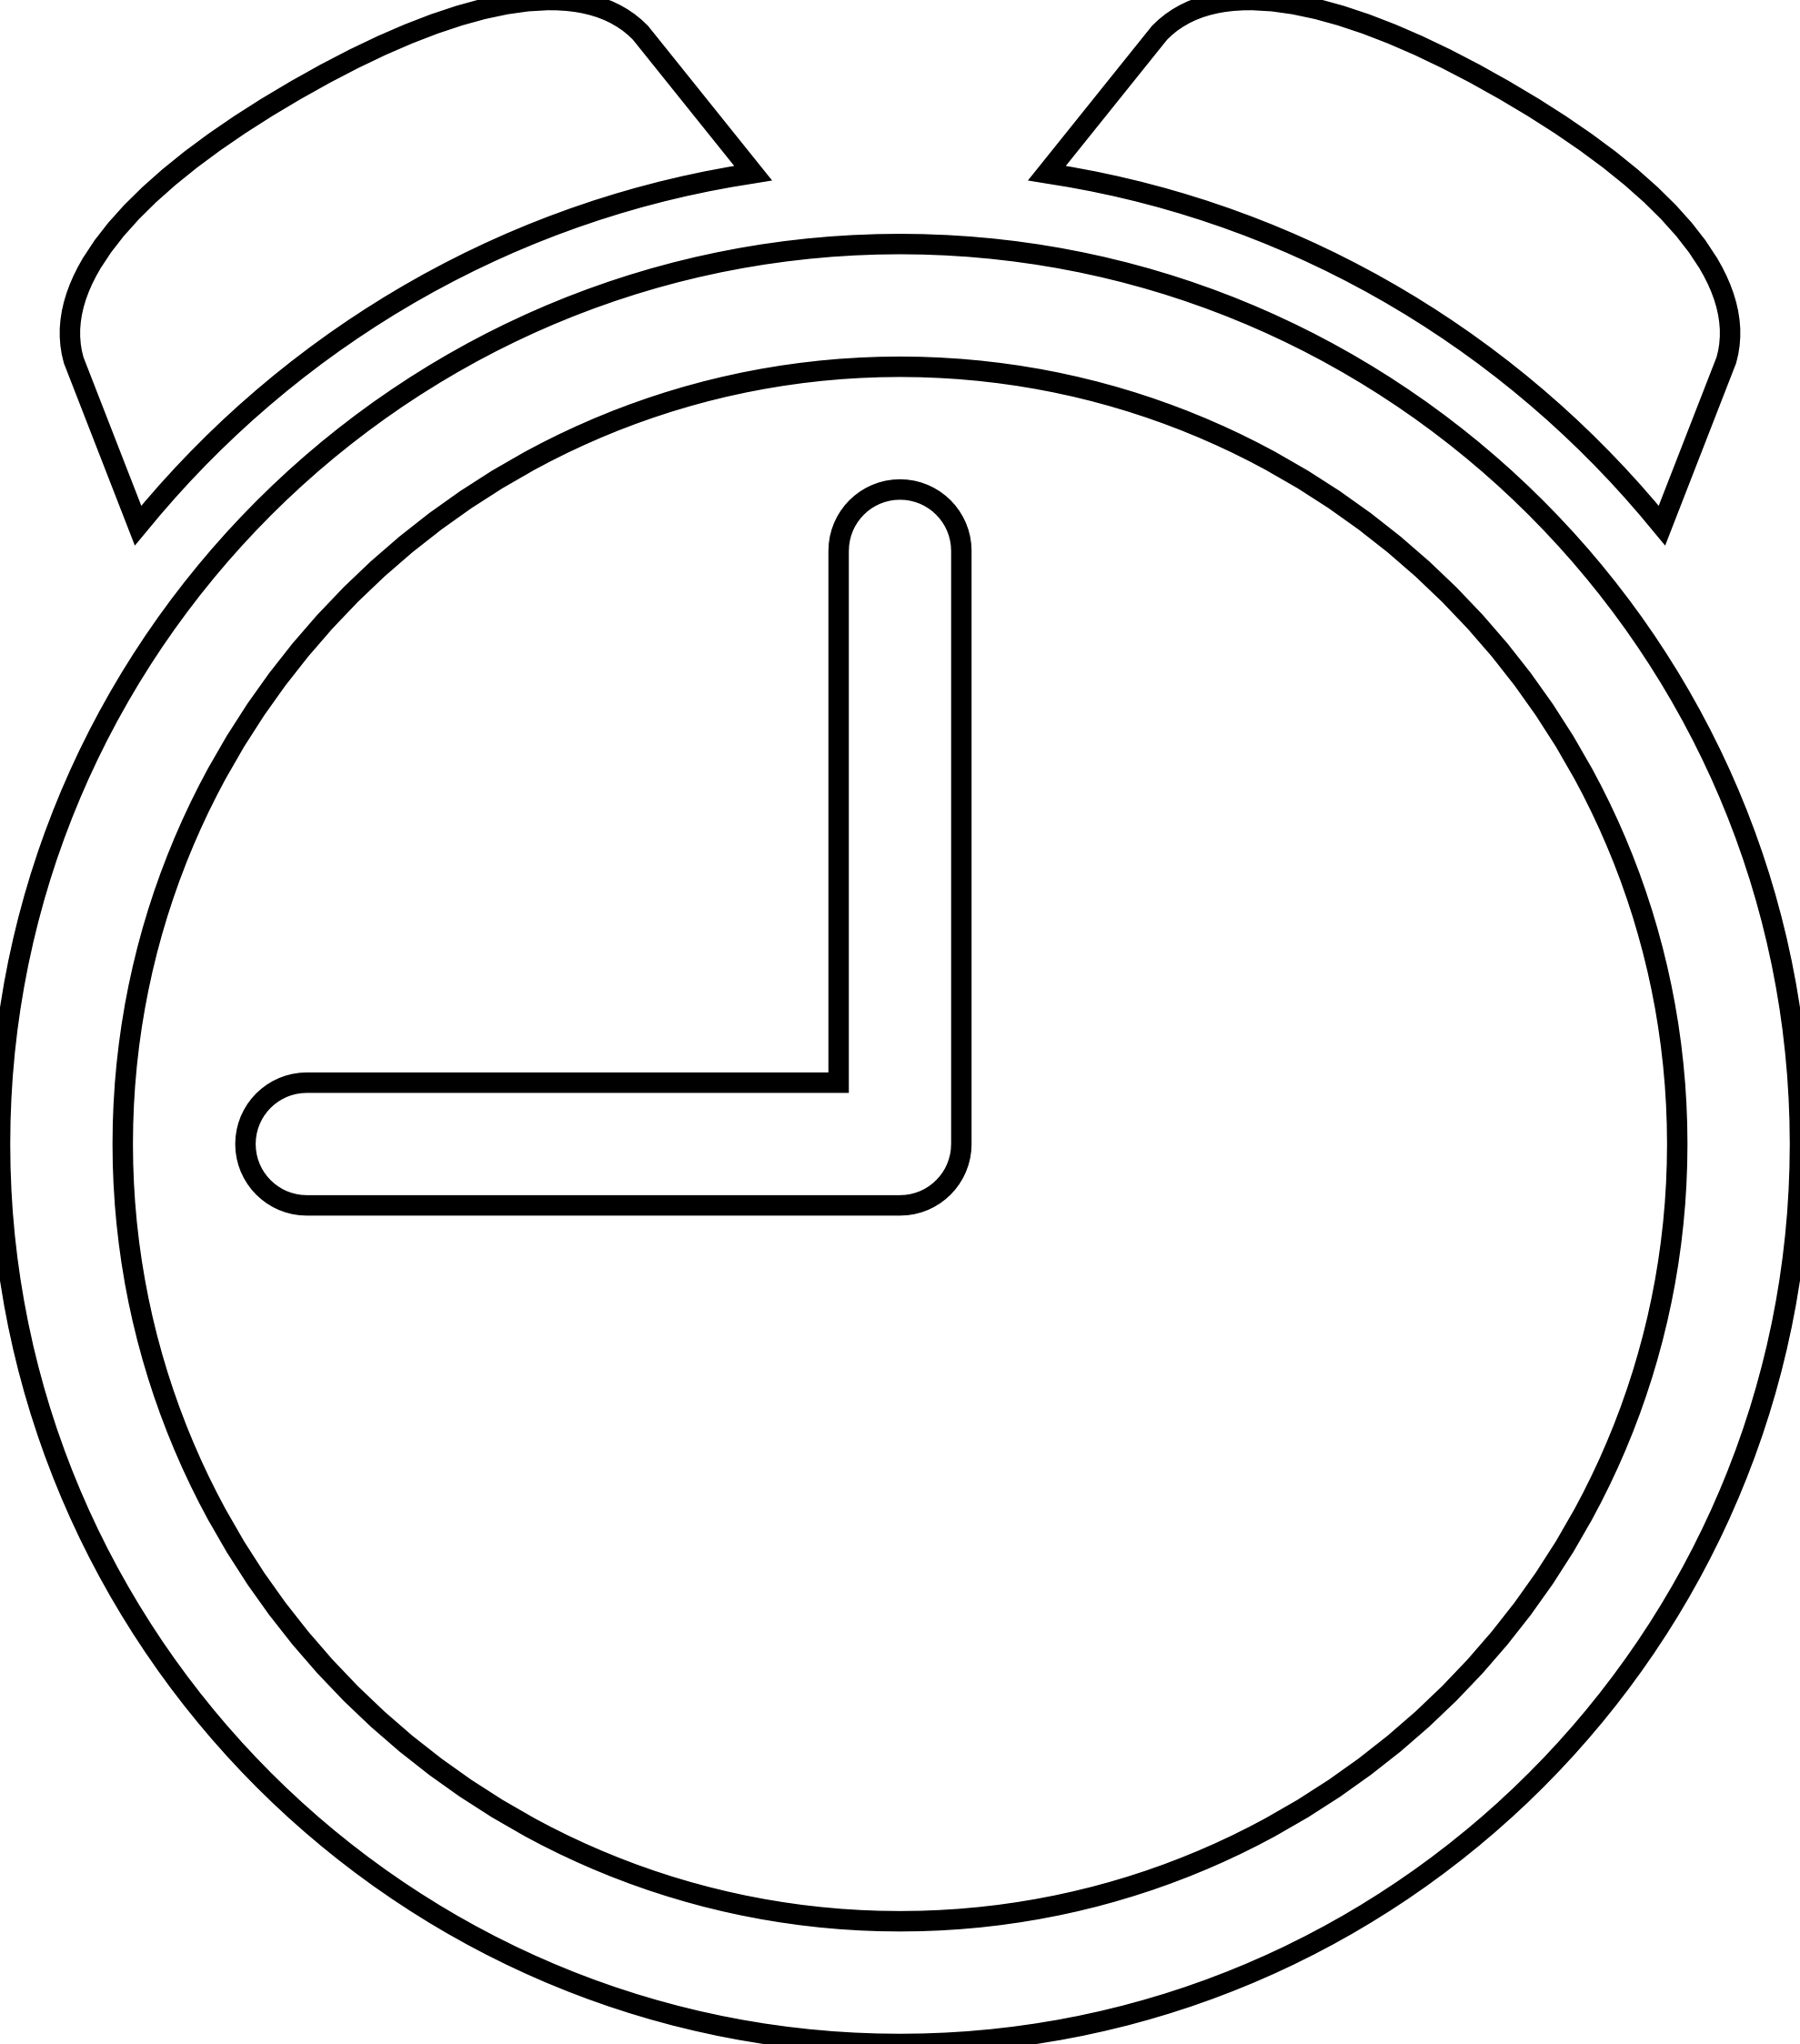 png transparent Time clipart black and white. Clock panda free images